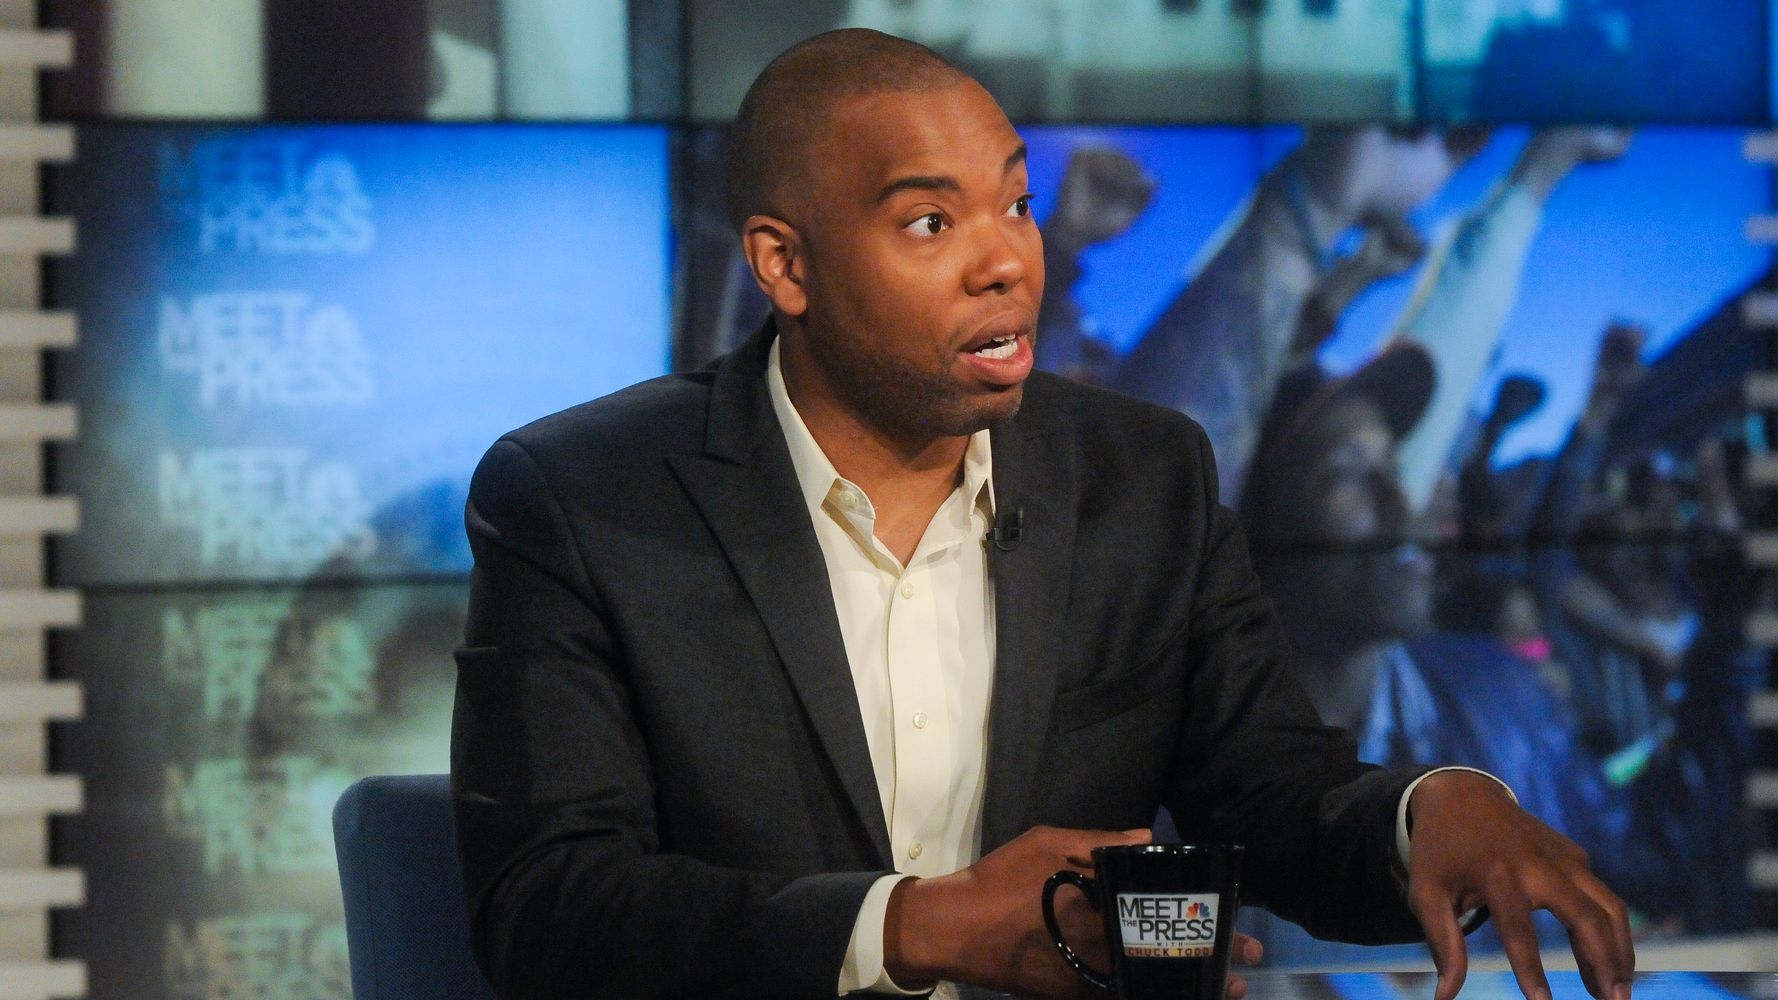 Ta-Nehisi Coates Tears Into John Kelly's 'Creationist Theorizing' On Civil War